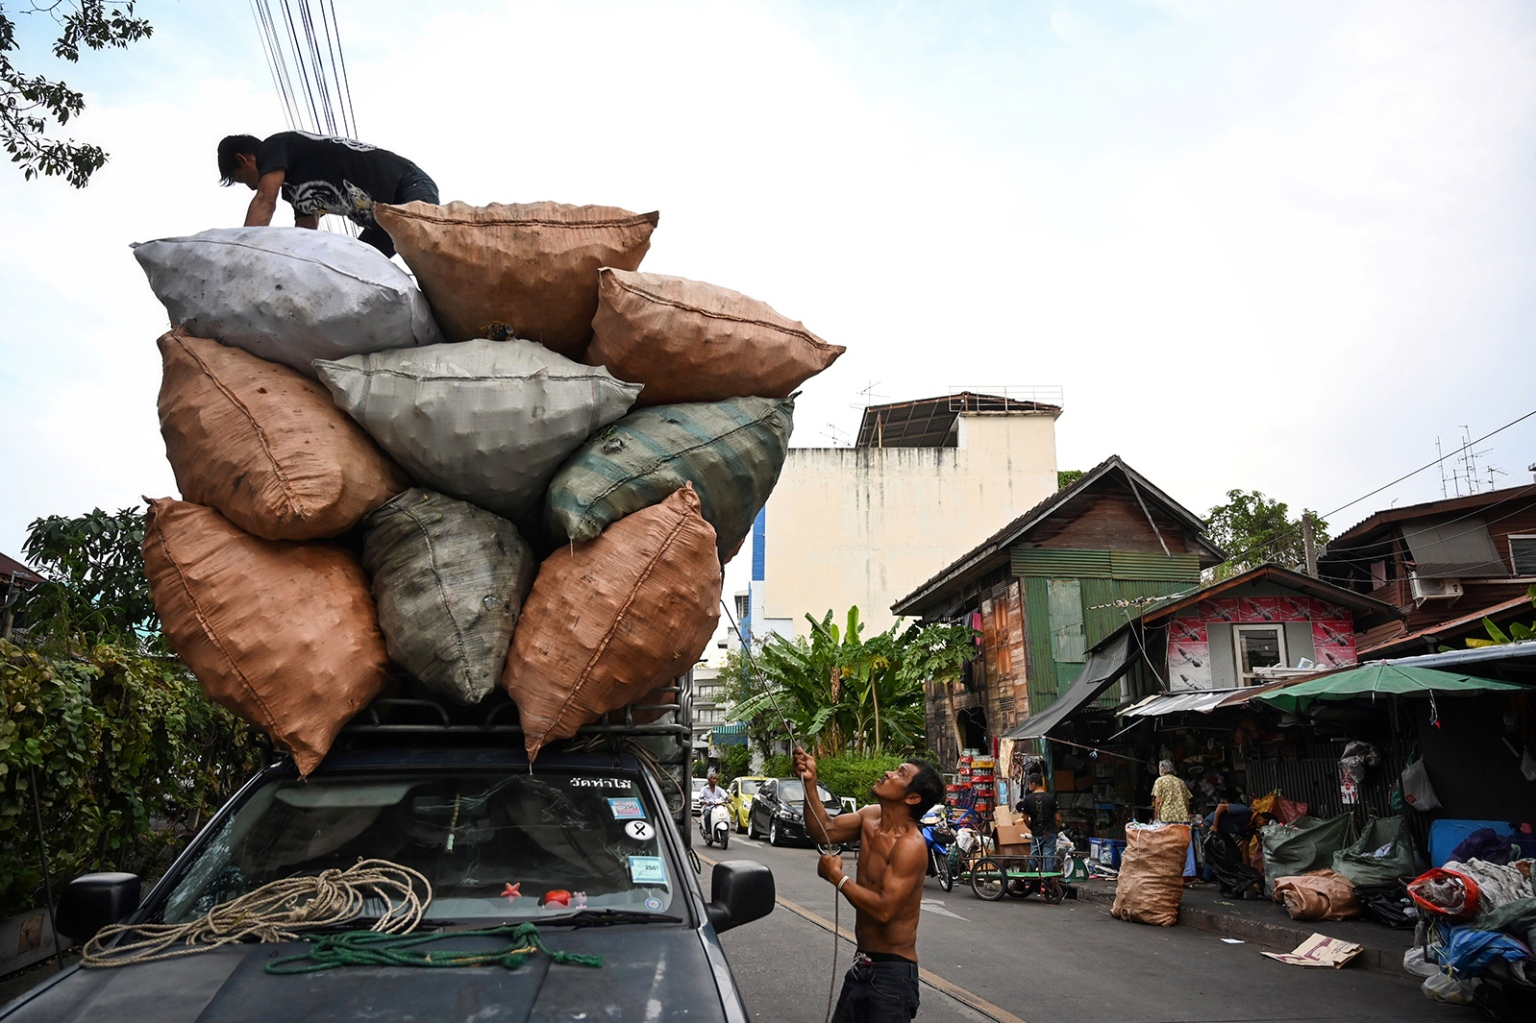 Two men prepare to transport sacks of scrap plastic bottles for recycling in Bangkok on April 9. LILLIAN SUWANRUMPHA/AFP/Getty Images